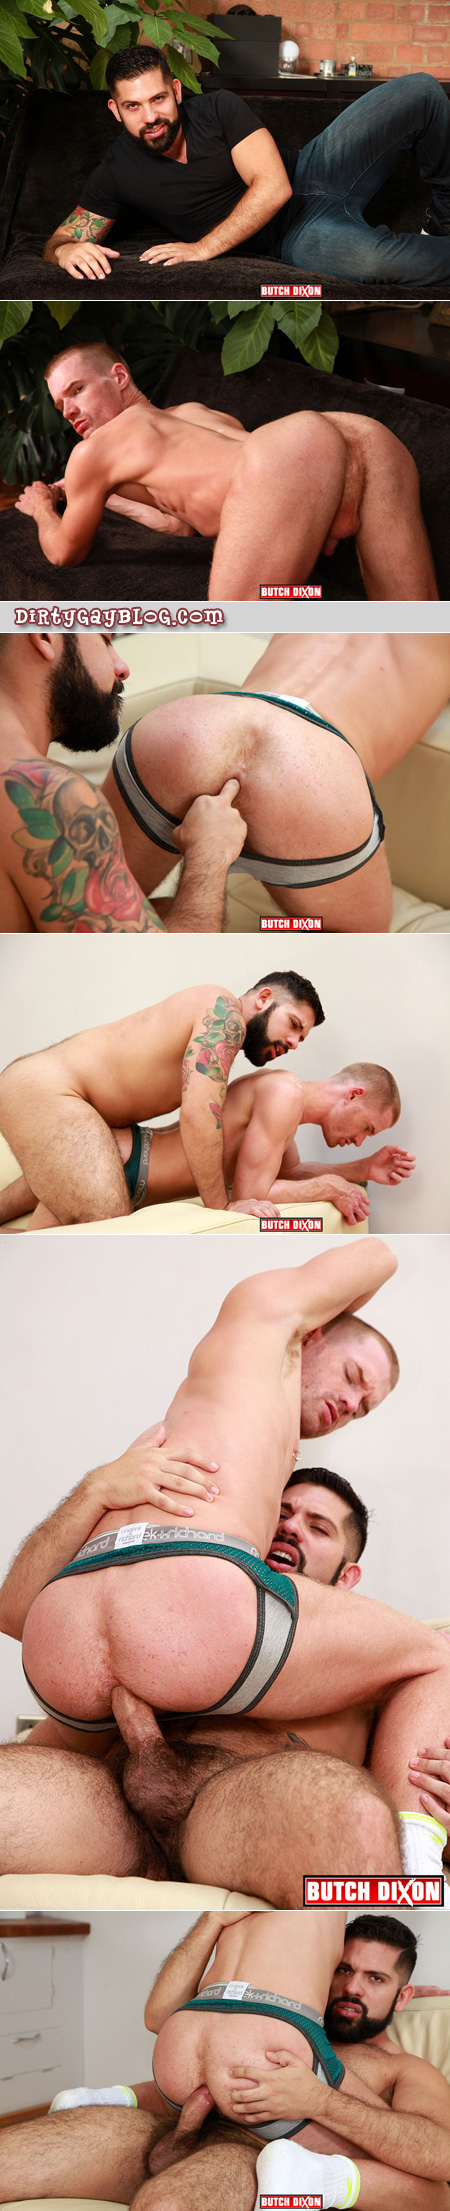 Beefy bear fucking a ginger guy while he's still in his socks and jockbrief.